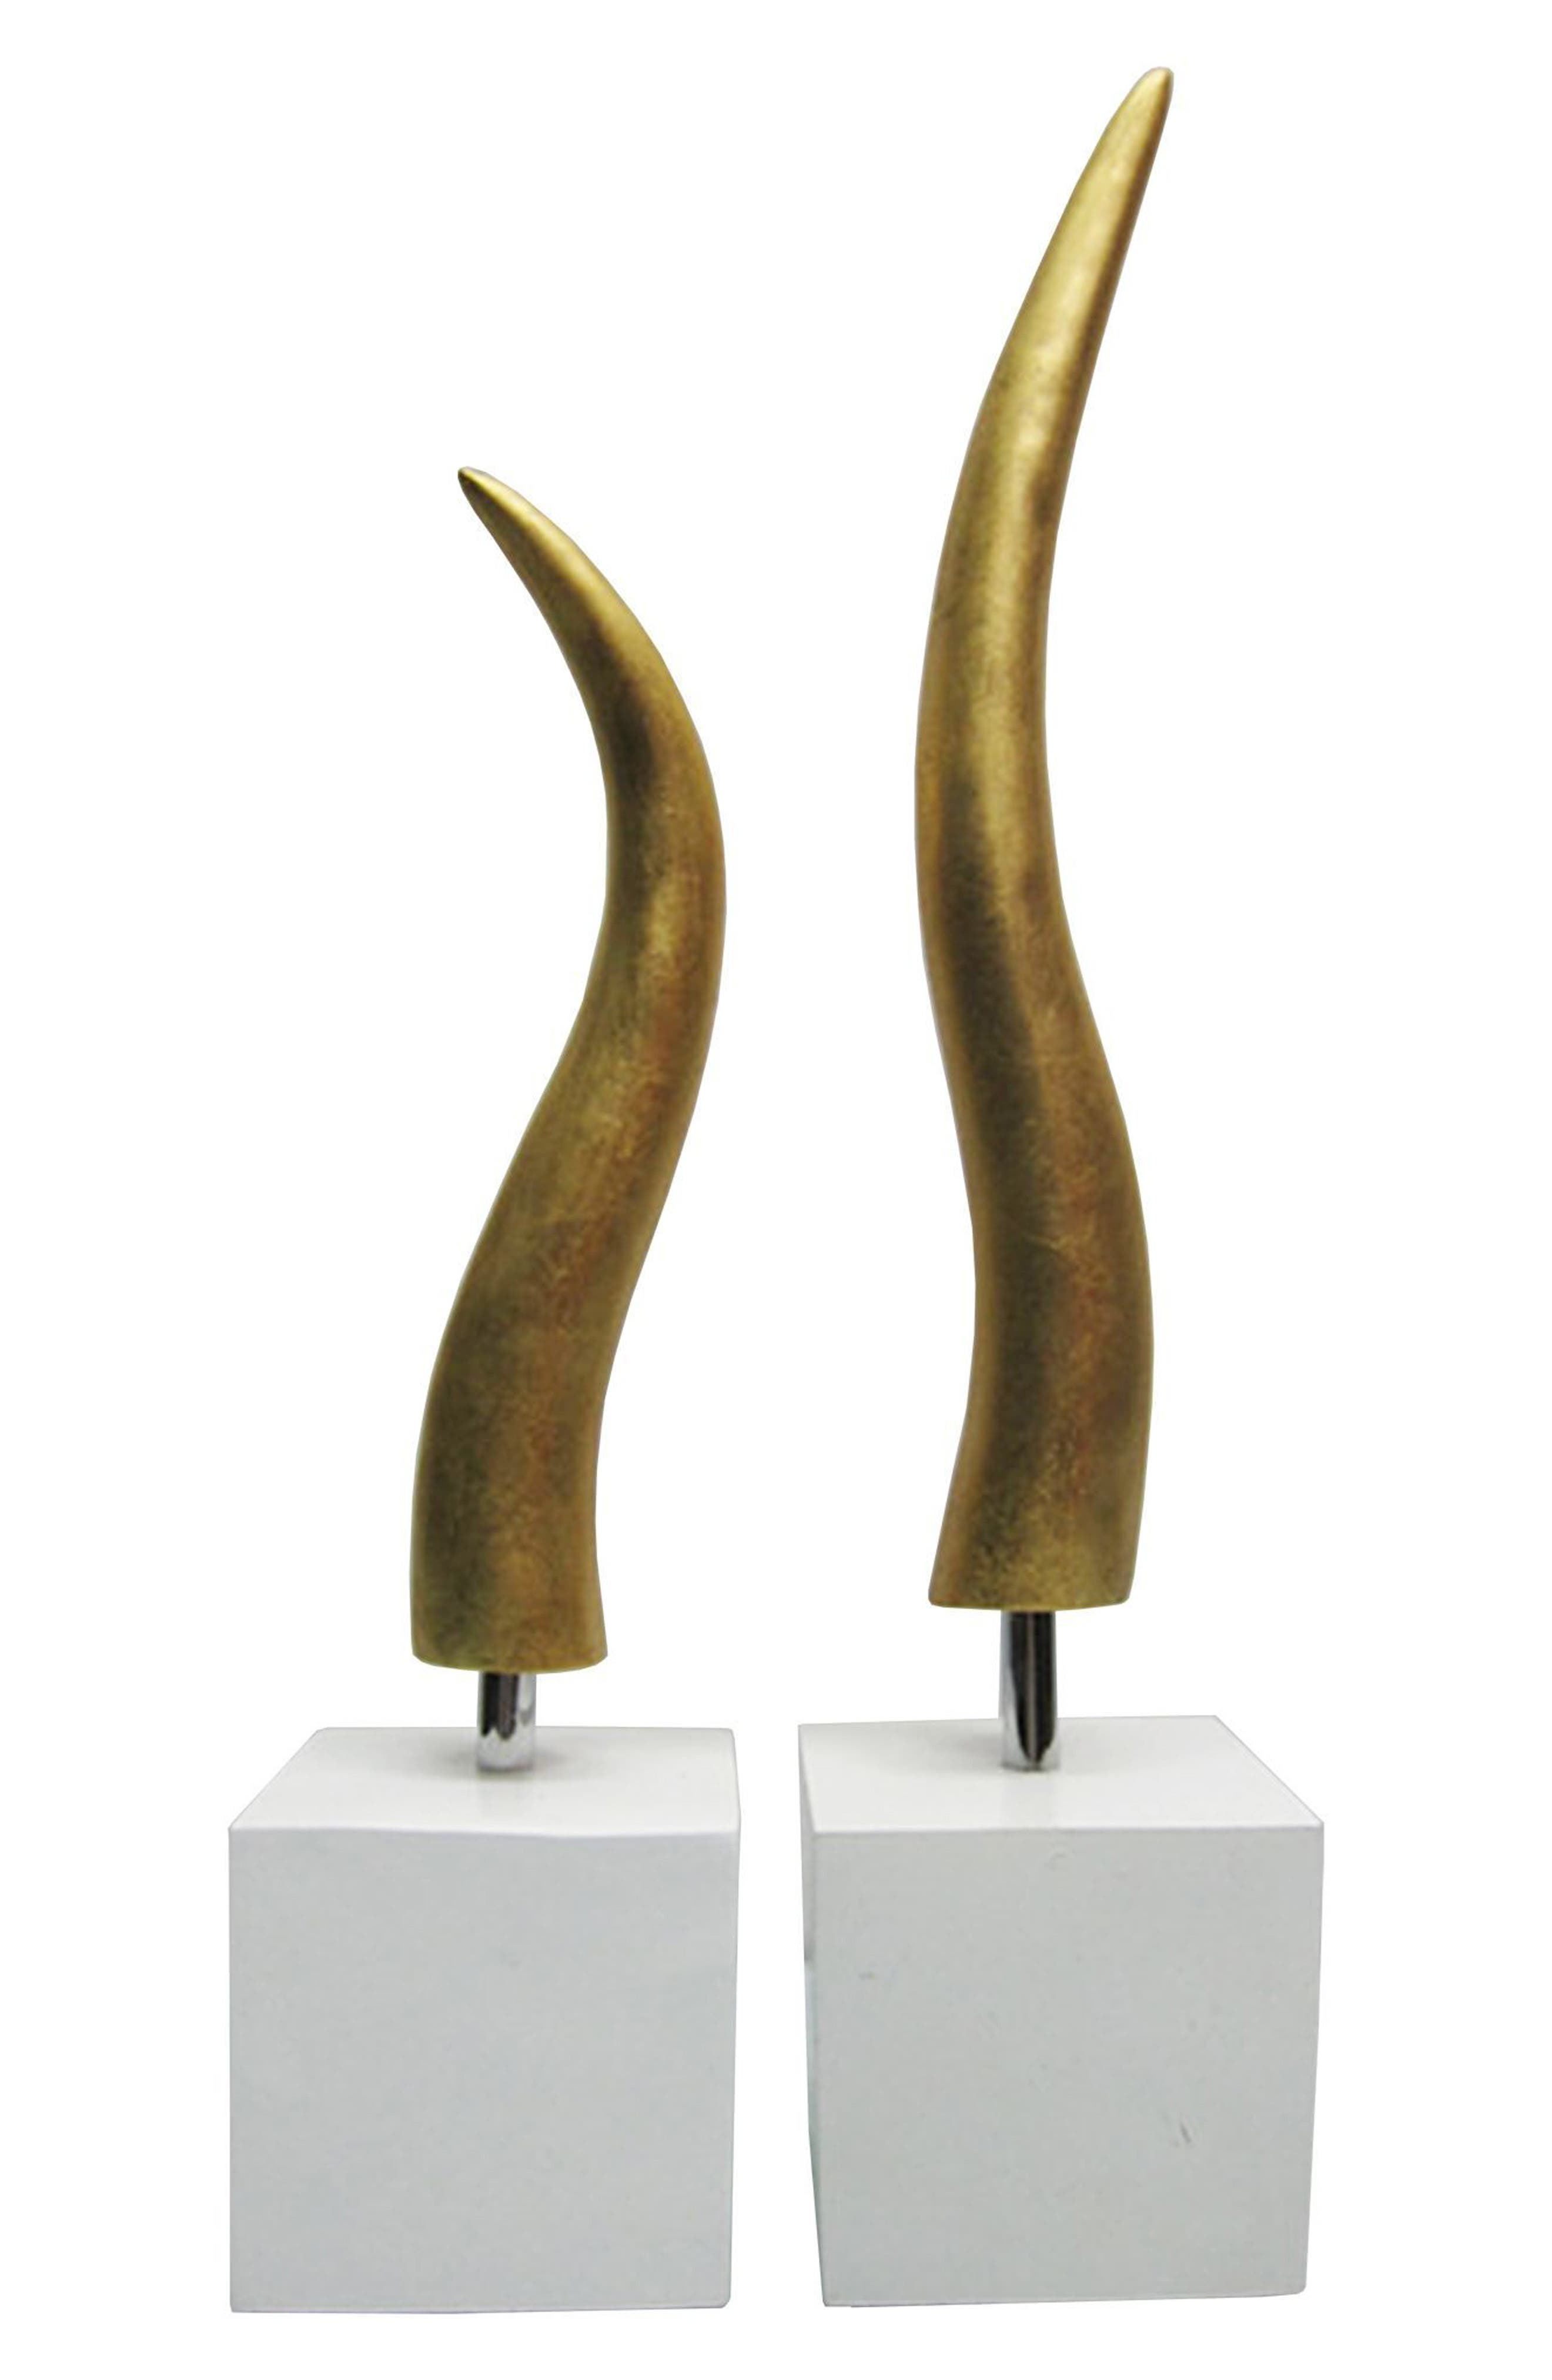 Osage Set of Two Statues,                             Main thumbnail 1, color,                             710